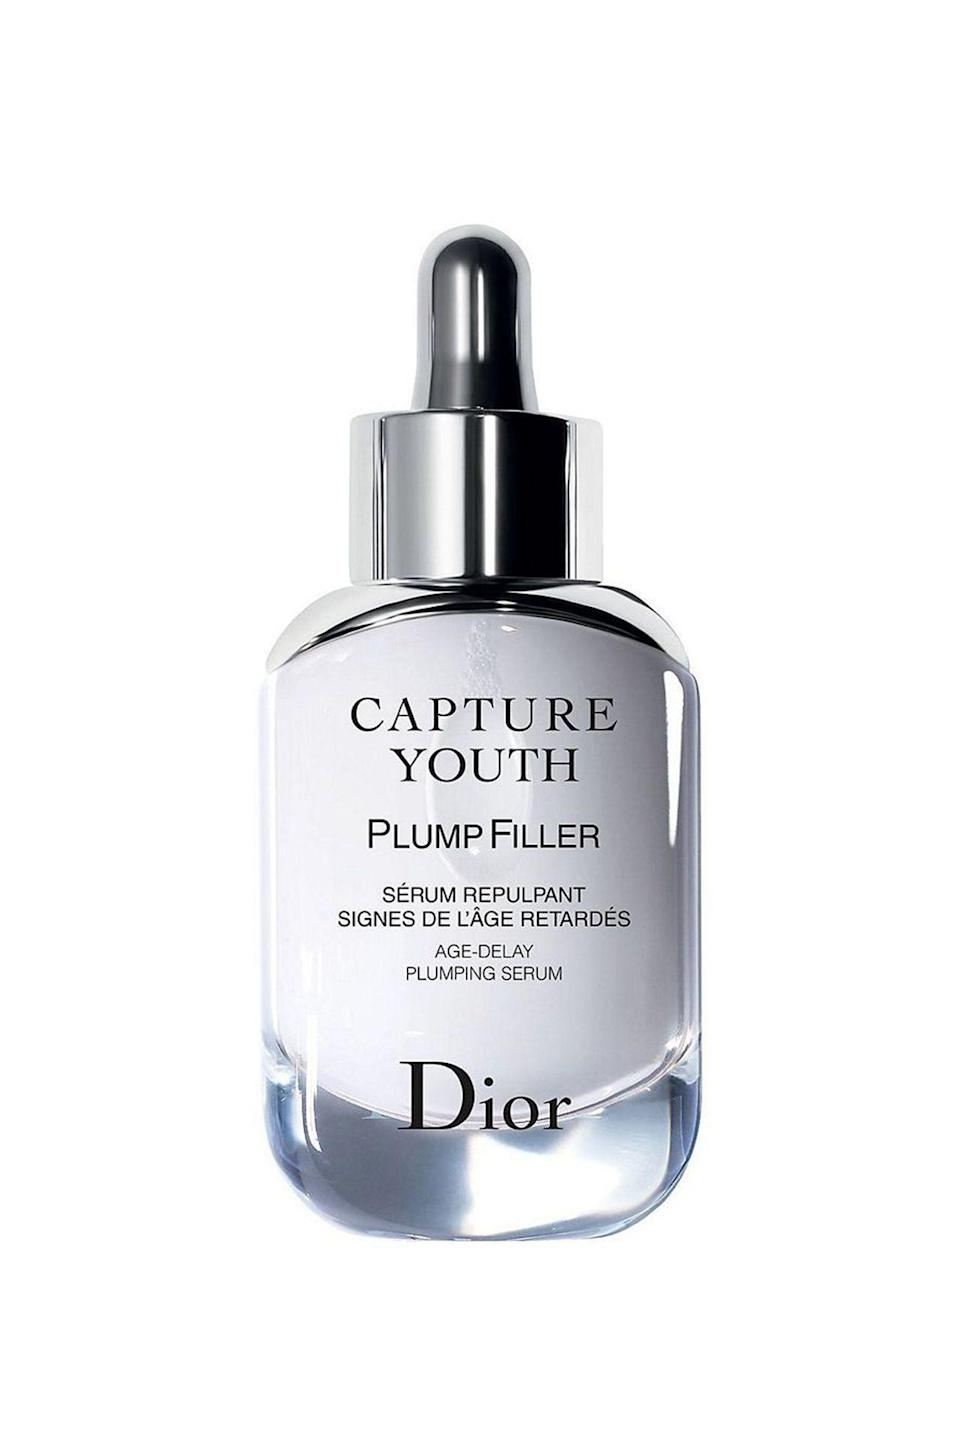 "<p><strong>Dior</strong></p><p>sephora.com</p><p><strong>$95.00</strong></p><p><a href=""https://go.redirectingat.com?id=74968X1596630&url=https%3A%2F%2Fwww.sephora.com%2Fproduct%2Fcapture-youth-serum-P428255&sref=https%3A%2F%2Fwww.redbookmag.com%2Fbeauty%2Fg34658814%2Fface-serum%2F"" rel=""nofollow noopener"" target=""_blank"" data-ylk=""slk:Shop Now"" class=""link rapid-noclick-resp"">Shop Now</a></p><p>There's five varied facial serums in the Dior collection, but we chose this one—which is loaded with hyaluronic acid—to quench the skin and release fine lines for a supple, fuller face. </p>"